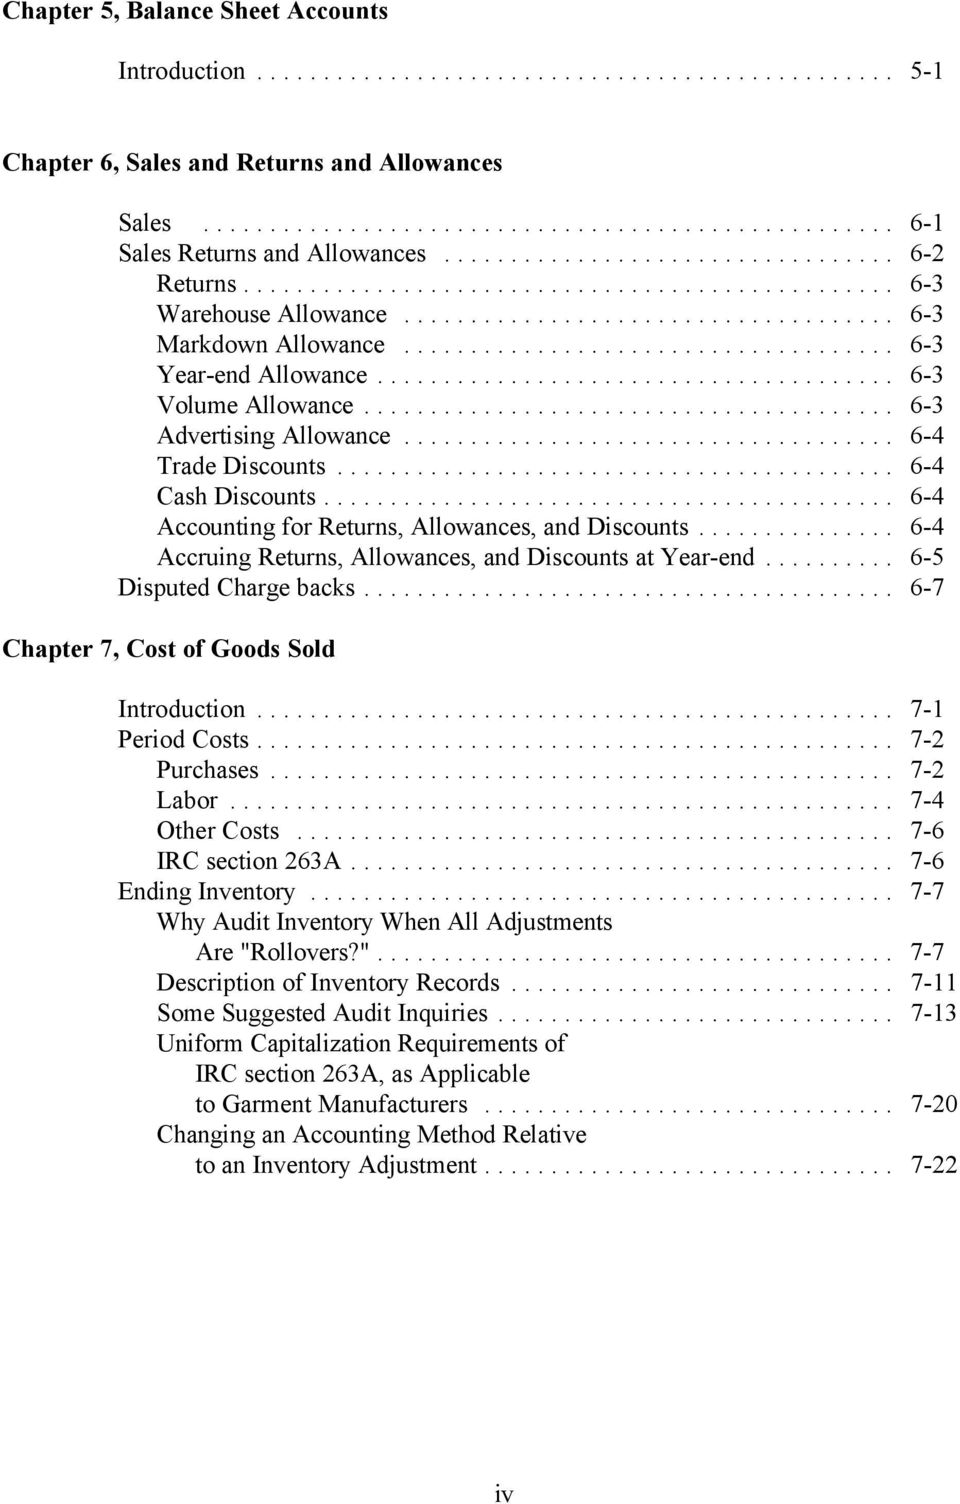 .. 6-4 Accounting for Returns, Allowances, and Discounts... 6-4 Accruing Returns, Allowances, and Discounts at Year-end... 6-5 Disputed Charge backs... 6-7 Chapter 7, Cost of Goods Sold Introduction.